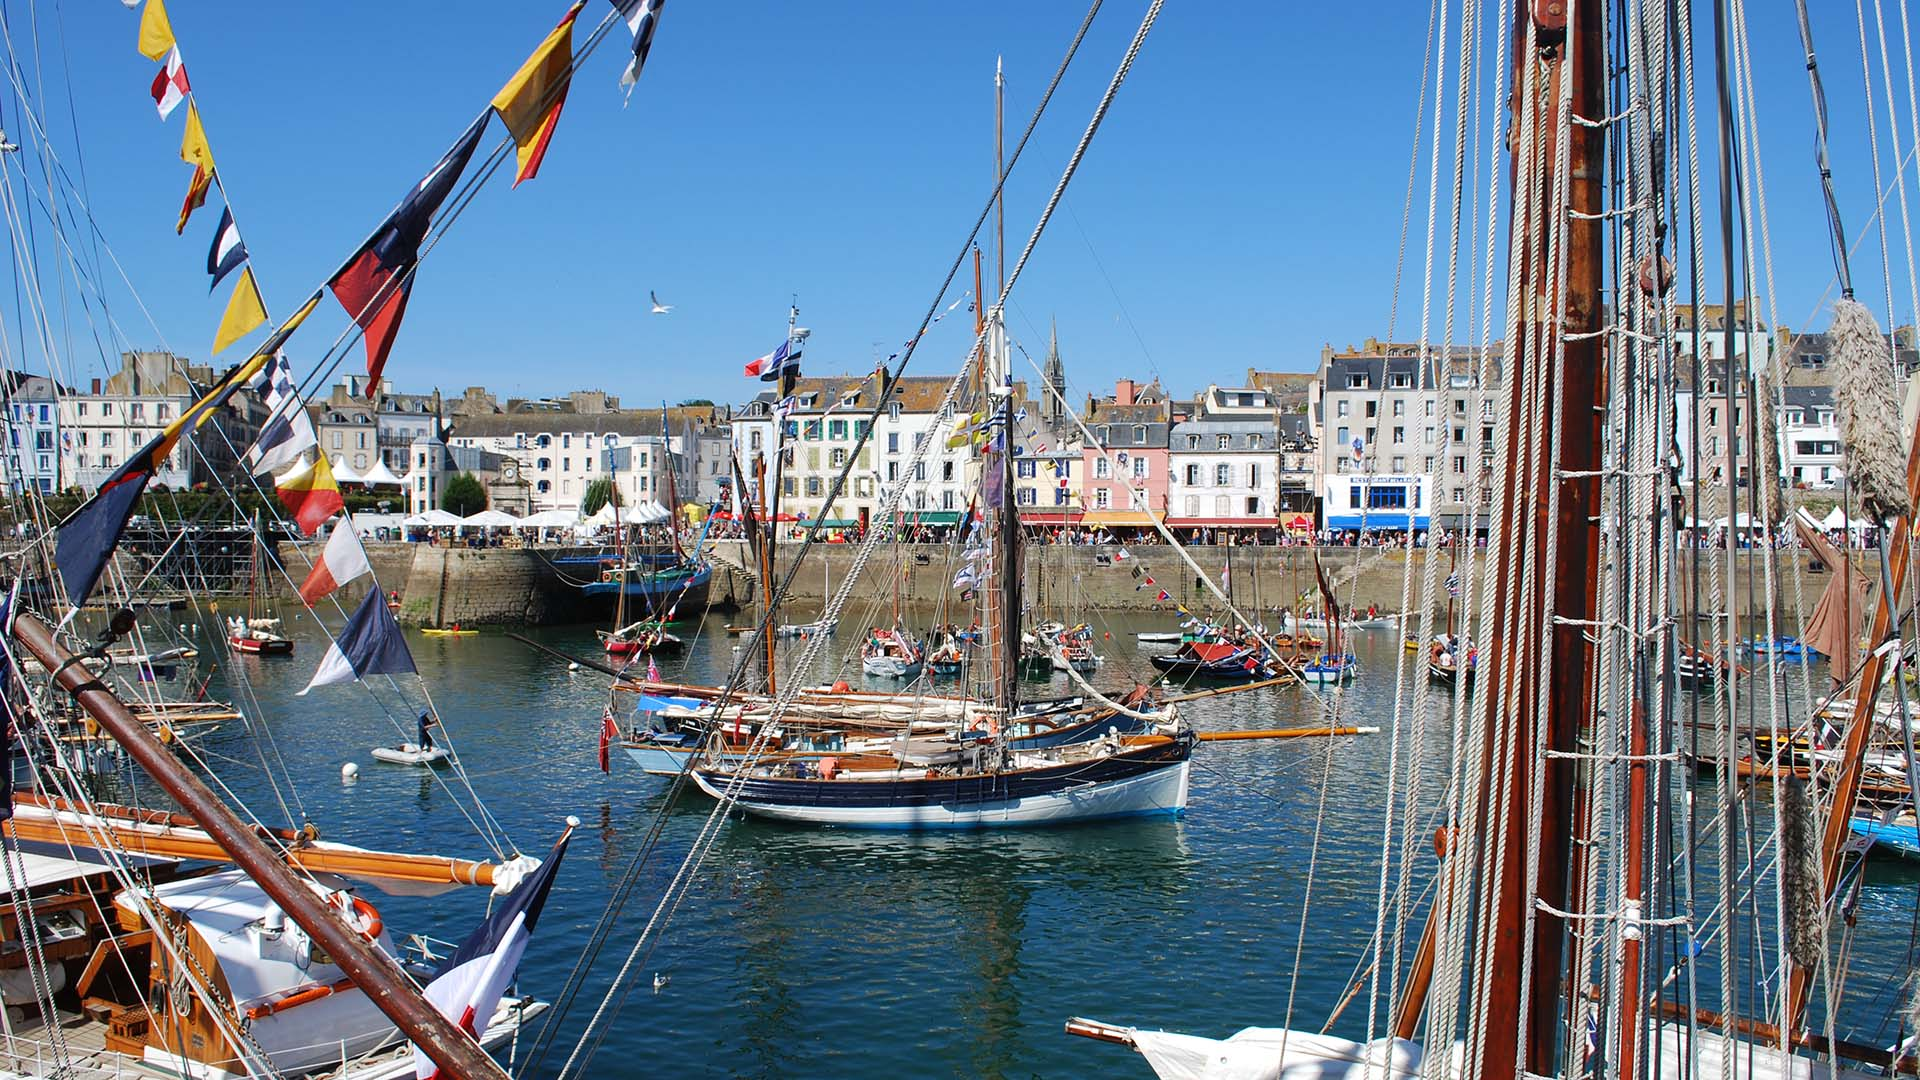 Amelie Rose moored up at Temps Fete Douarnenez back in 2012